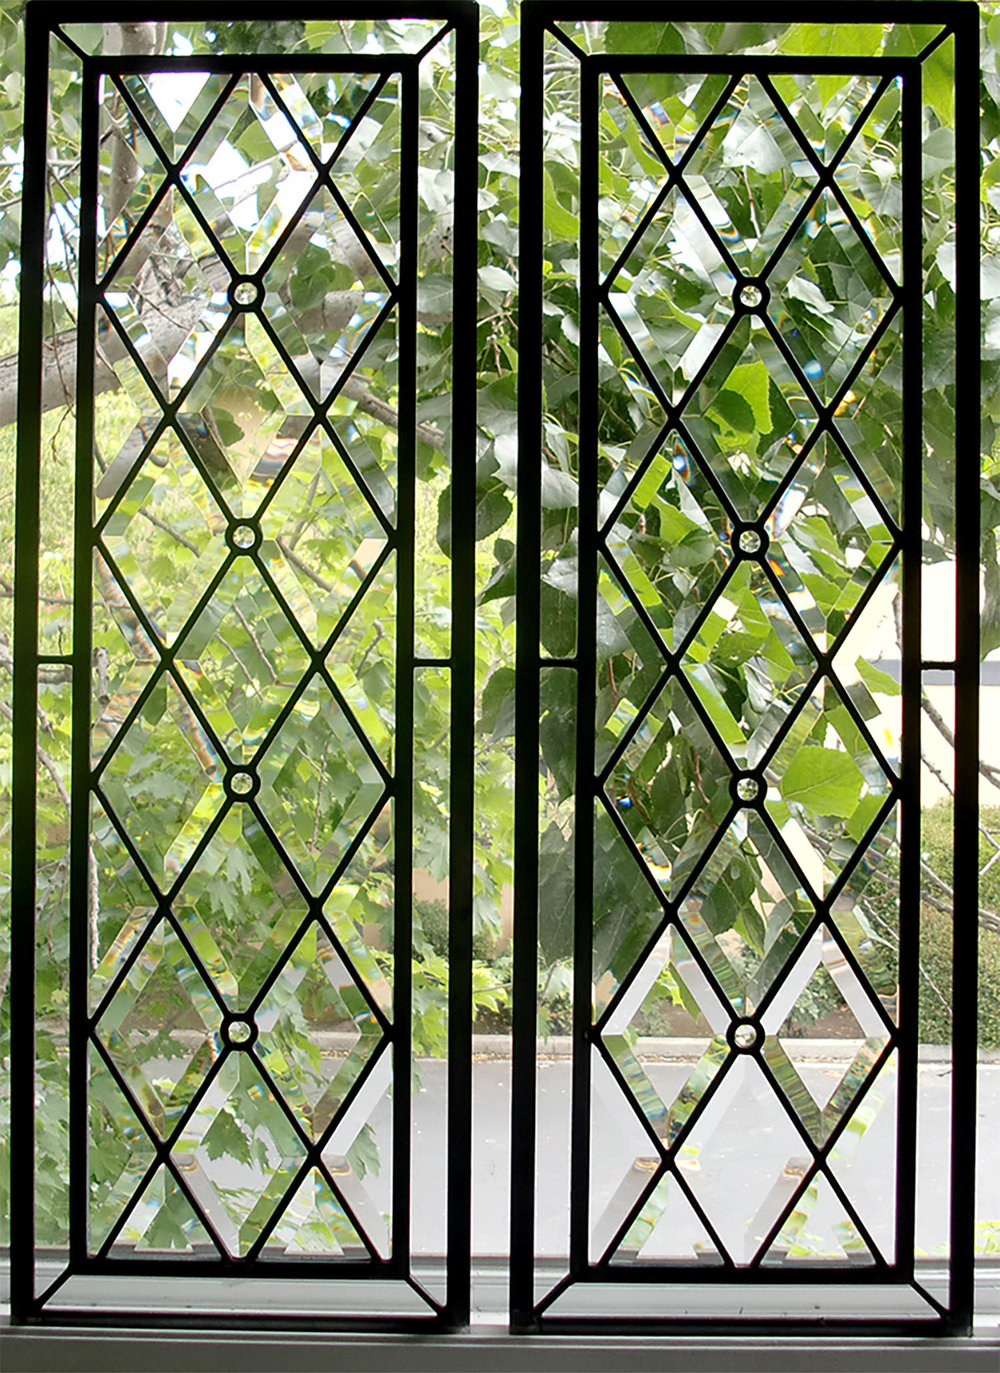 border beveled leaded glass stained glass window palo alto atherton california san francisco.jpg